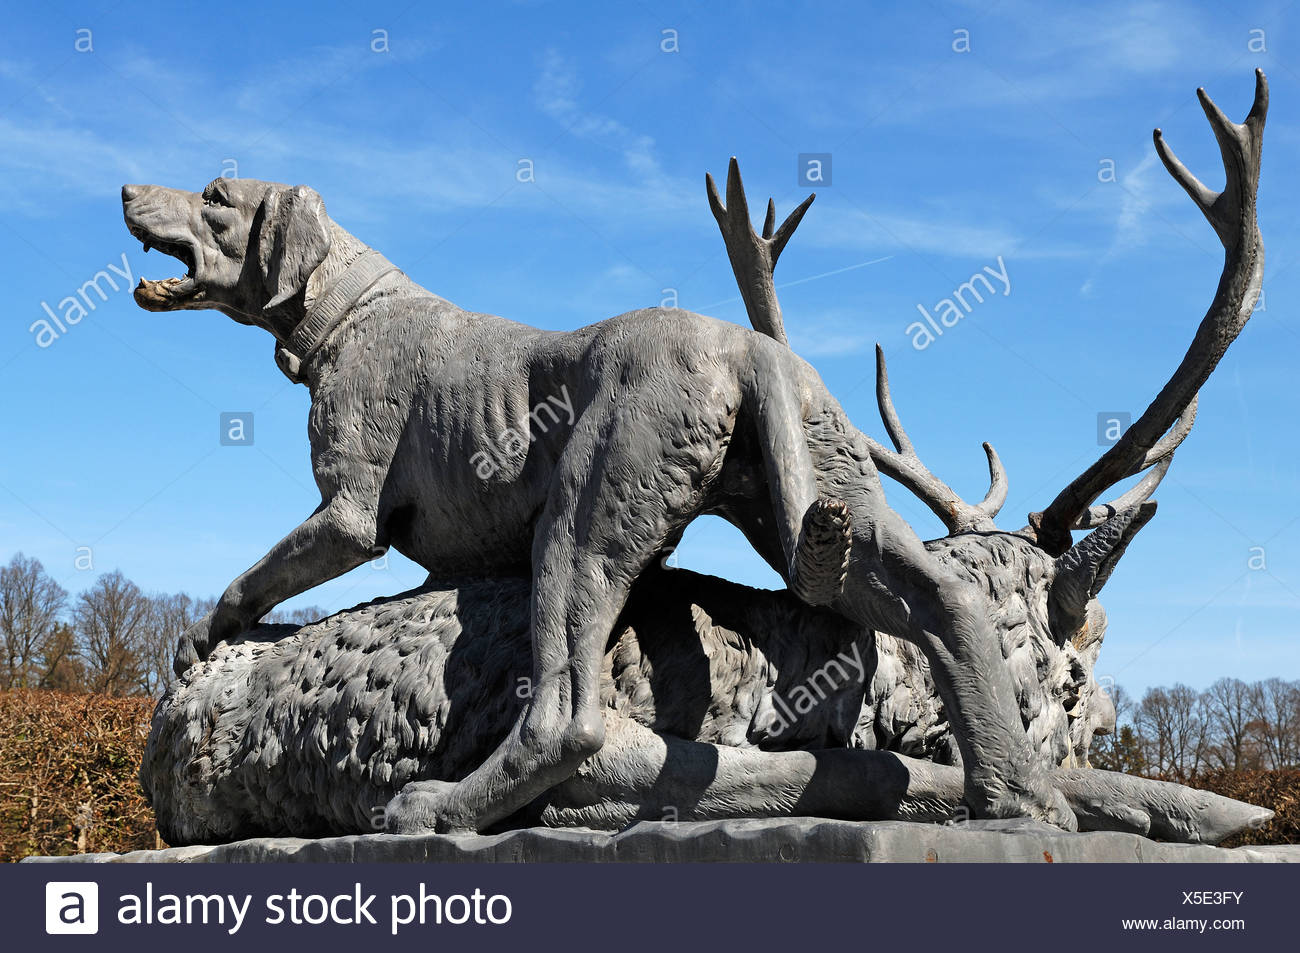 Statues of hunting animals by Johann Nepomuk Hautmann in front of Herrenchiemsee Palace, Herreninsel island, Bavaria - Stock Image